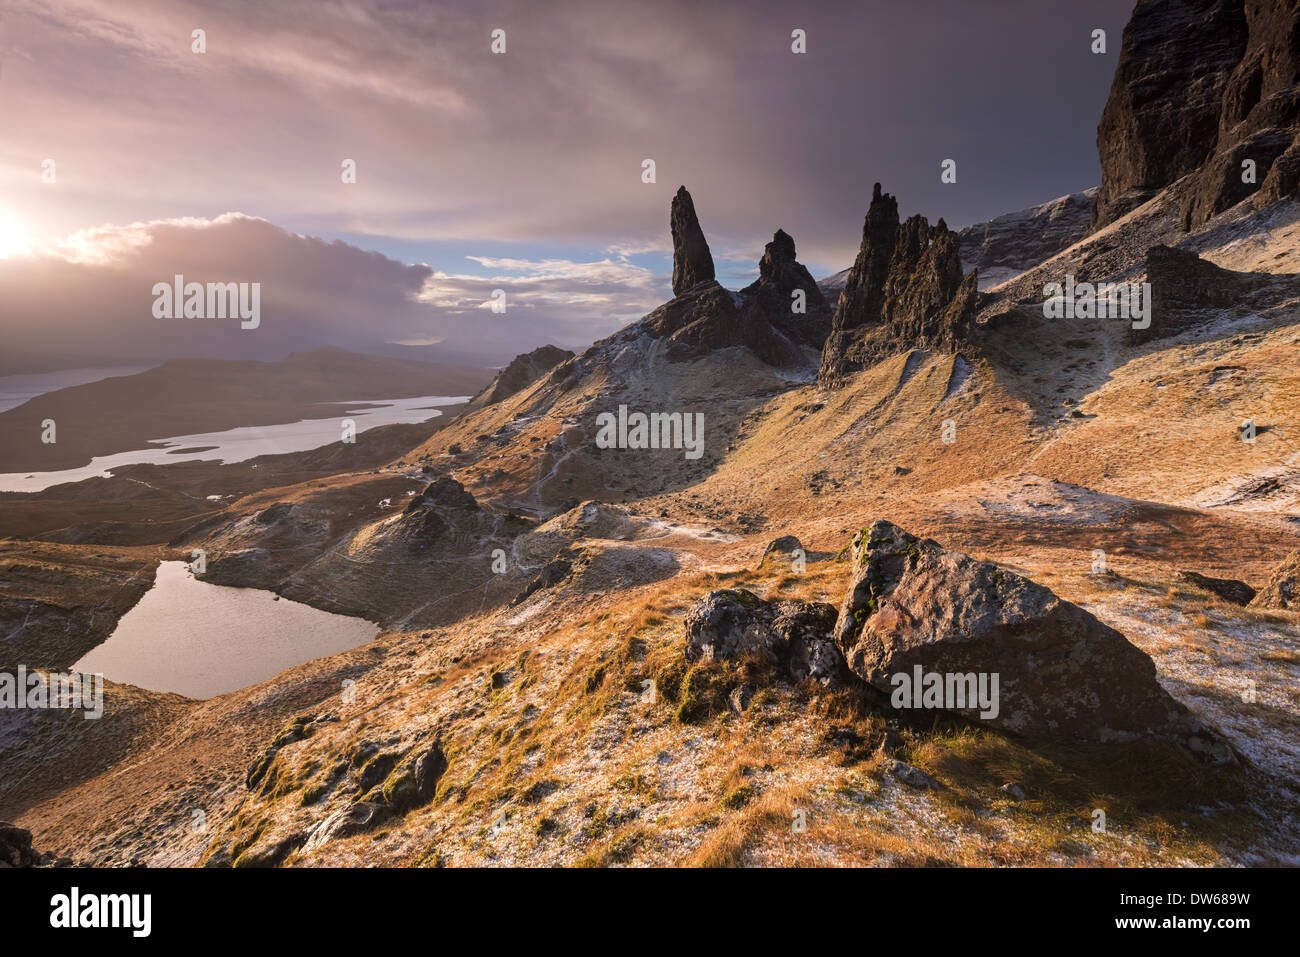 Dramatic scenery at the Old Man of Storr, Isle of Skye, Scotland. Winter (December) 2013. Stock Photo